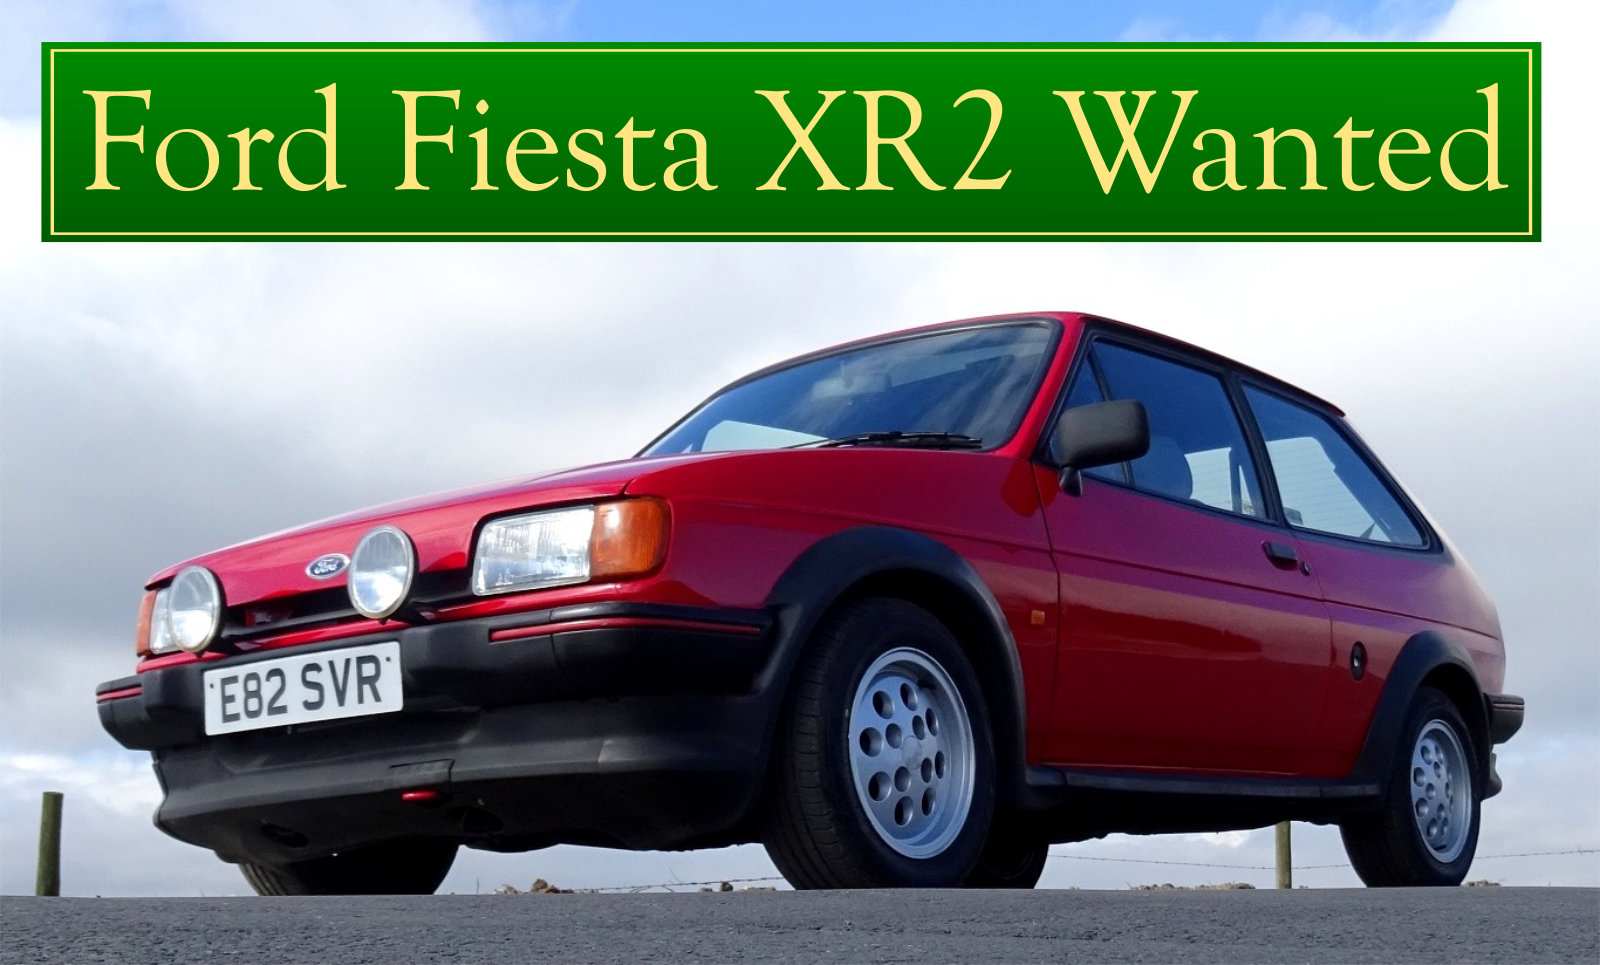 1986  FORD SIERRA XR4i WANTED, CLASSIC CARS WANTED, QUICK PAYMENT Wanted (picture 2 of 6)